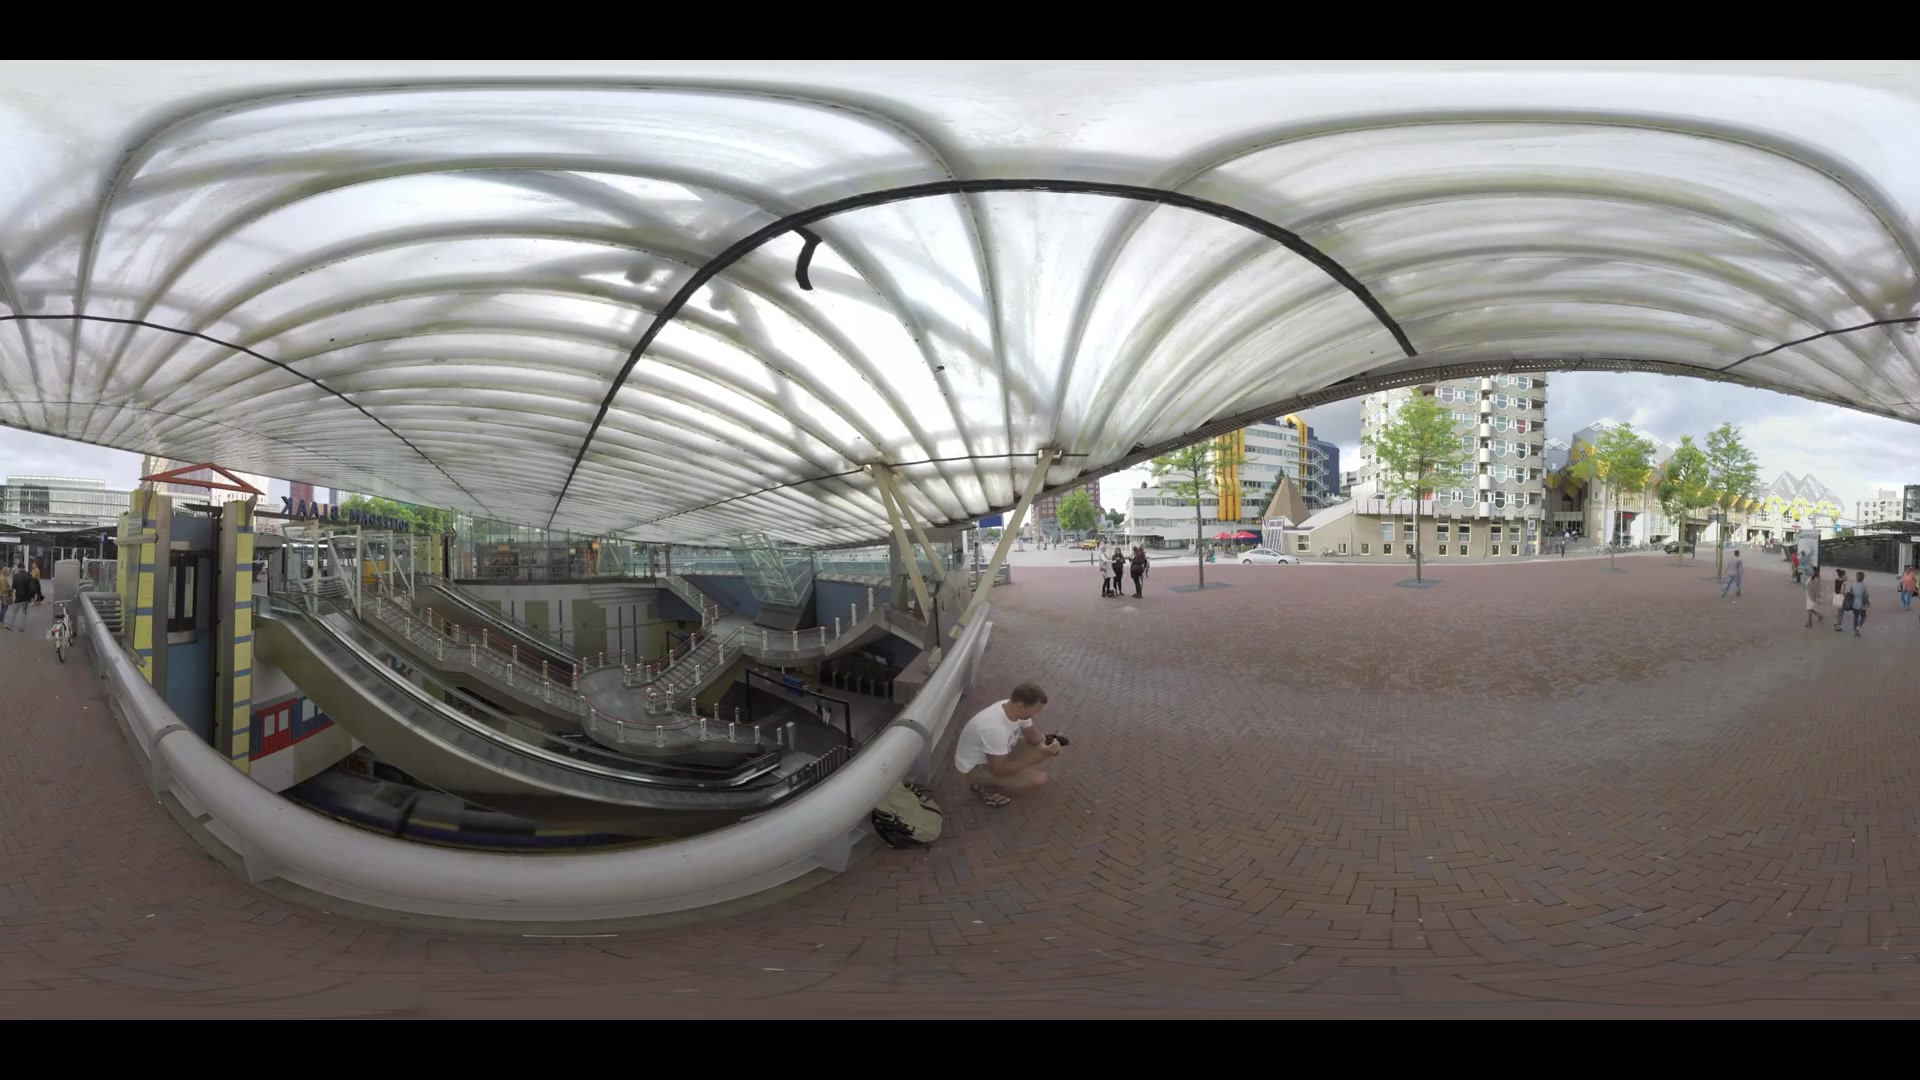 ROTTERDAM, NETHERLANDS - AUGUST 07, 2016: 360 VR video. View to the entrance of Blaak metro and railway station with escalators going up and down. Street with Central Library, Cube Houses and people walking by